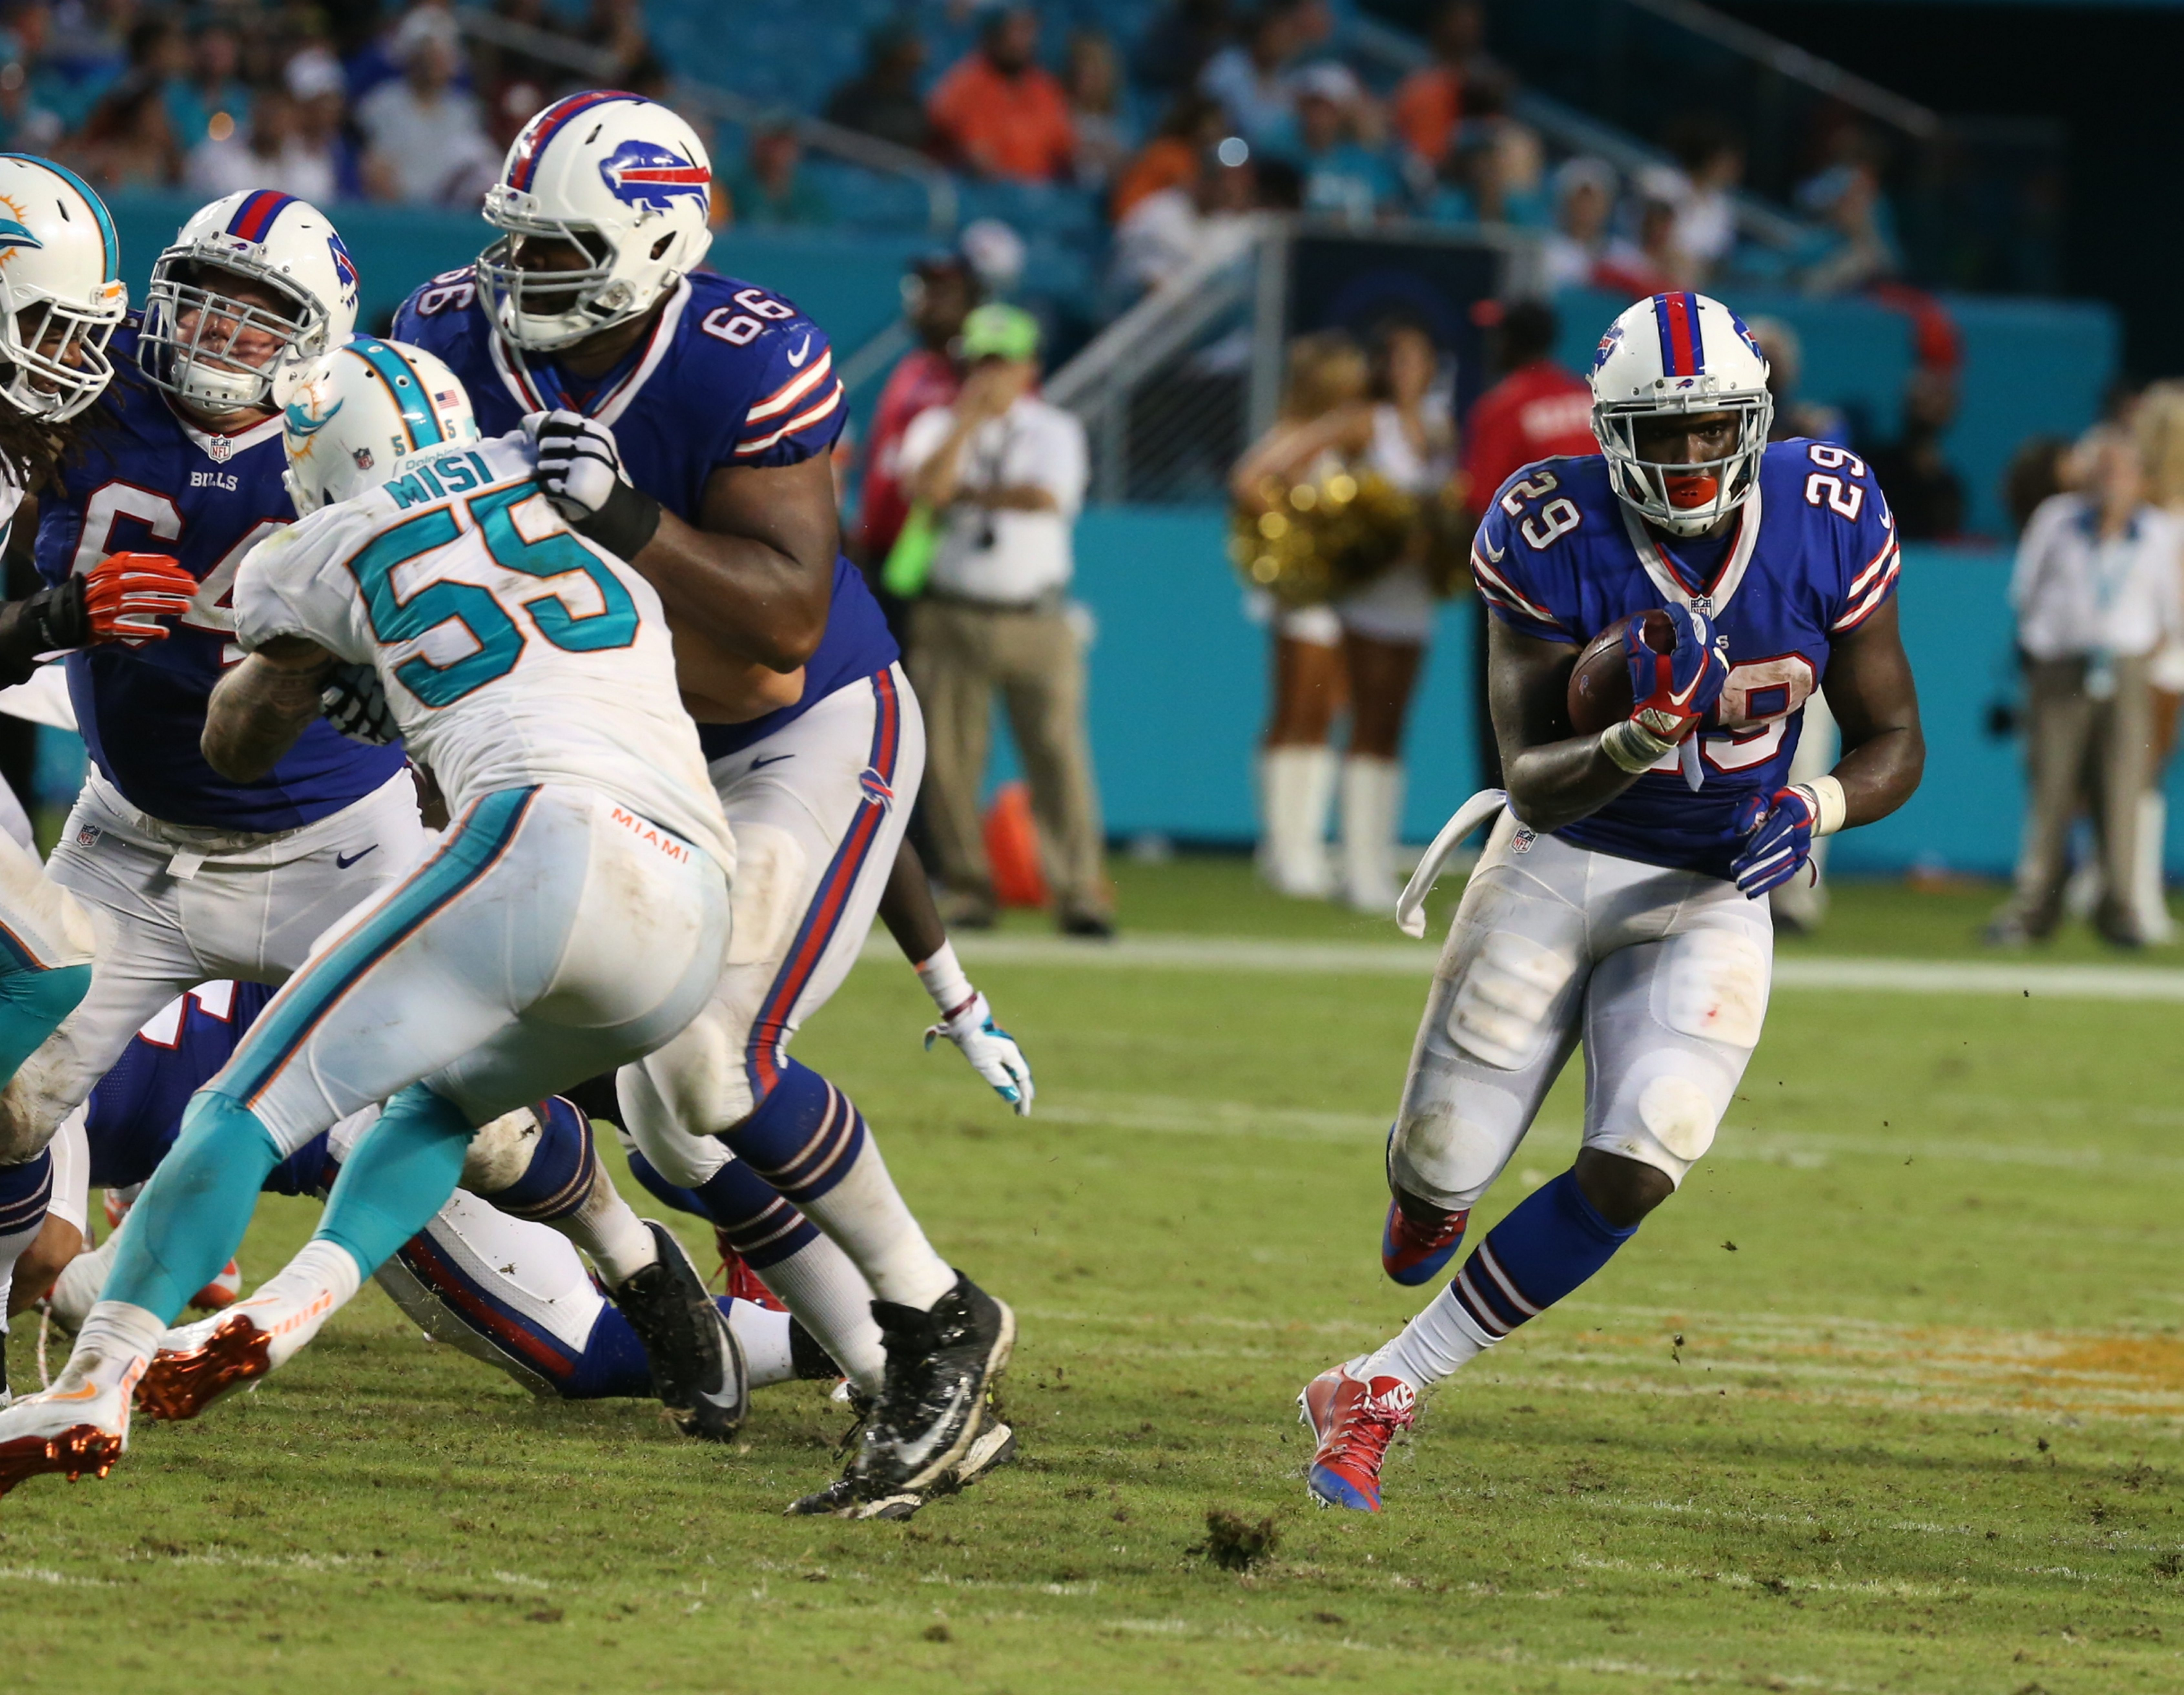 Karlos Williams (29) ran for 110 yards against Miami on Sunday while cornerback Ronald Darby (28) had one of the three Buffalo interceptions in the first half against the Dolphins.